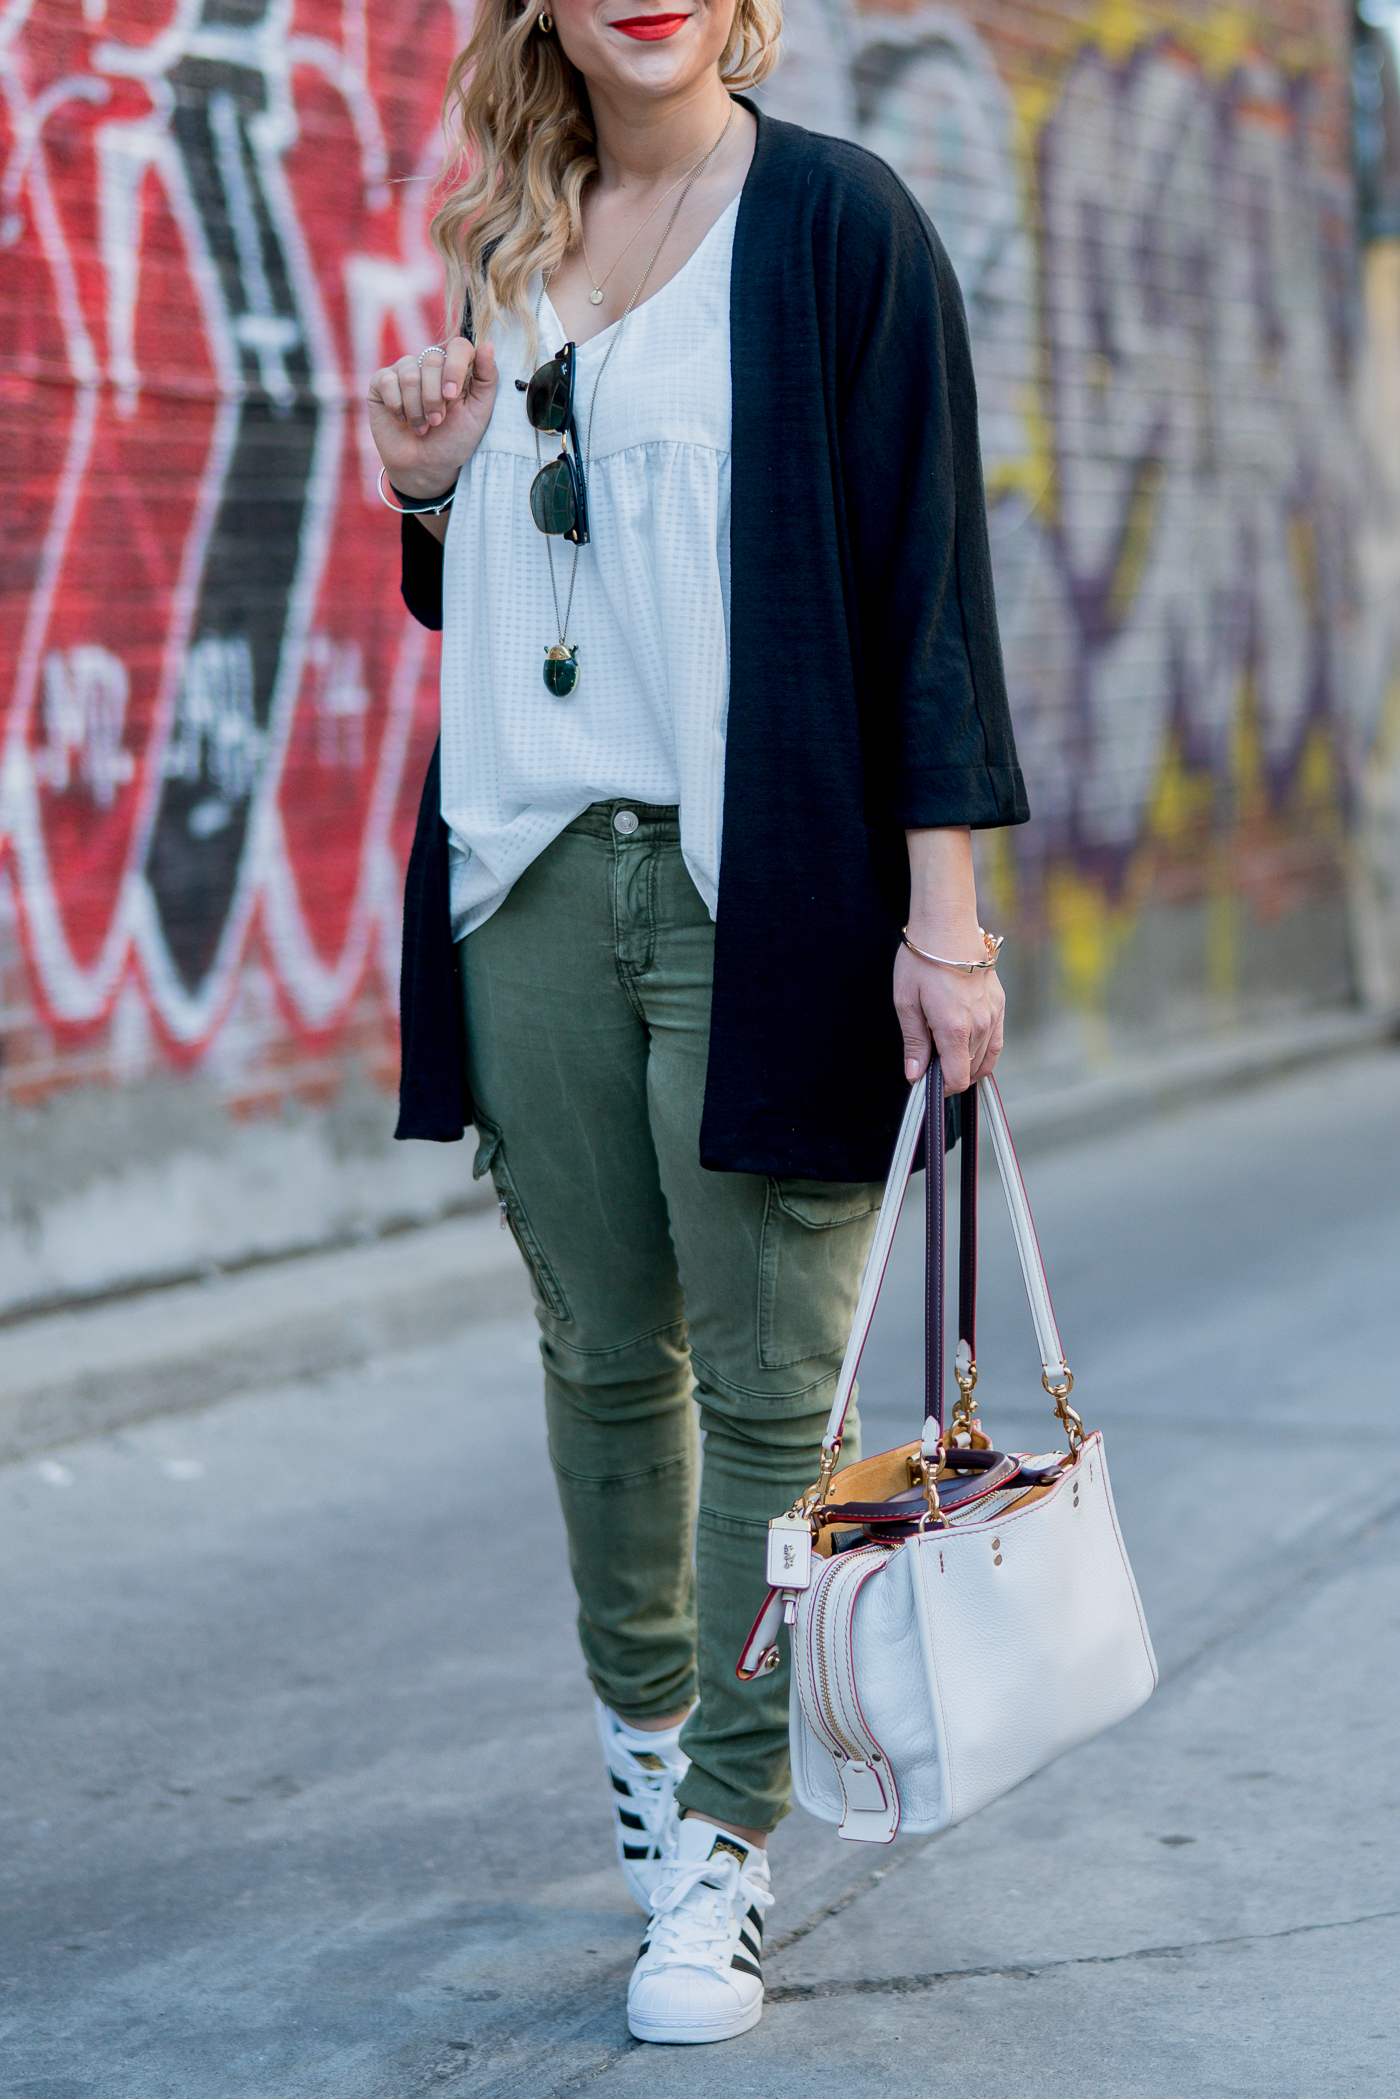 Canadian fashion blogger, Jackie of Something About That, wearing skinny cargo pants from Zara